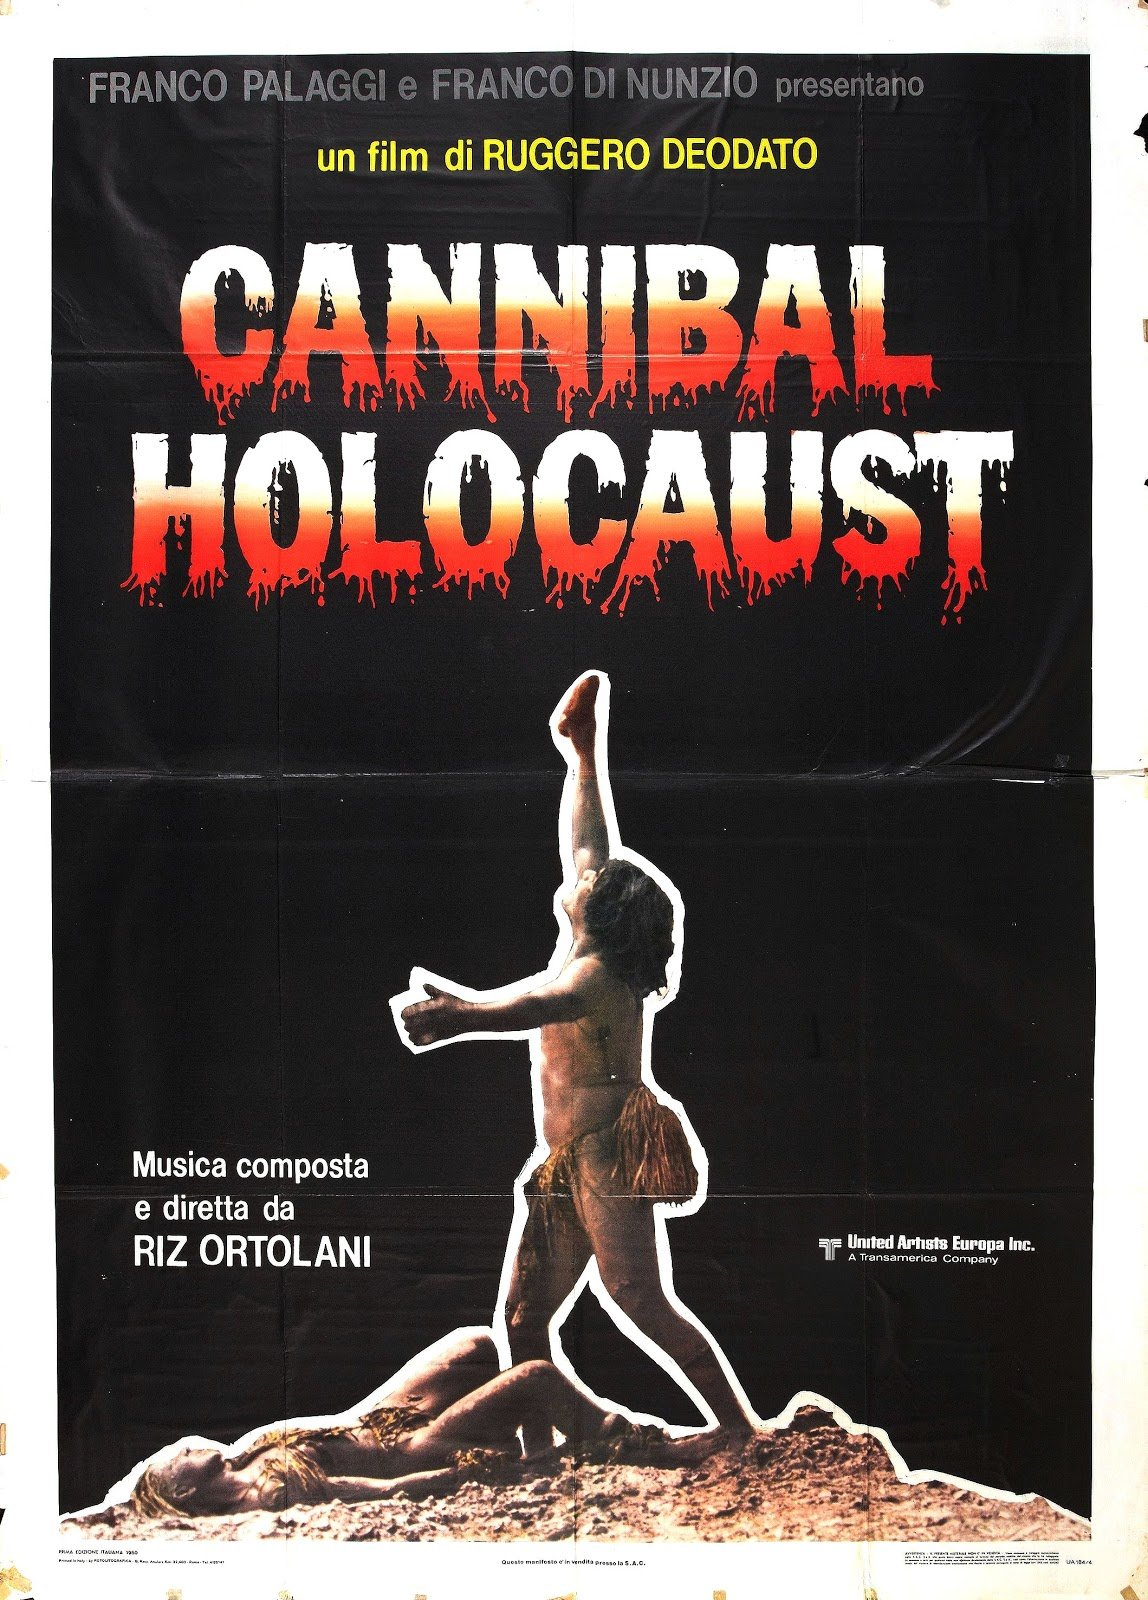 Cannibal Holocaust, 1980 mockumentary horror best лучшие фильмы ужасов mondo cane